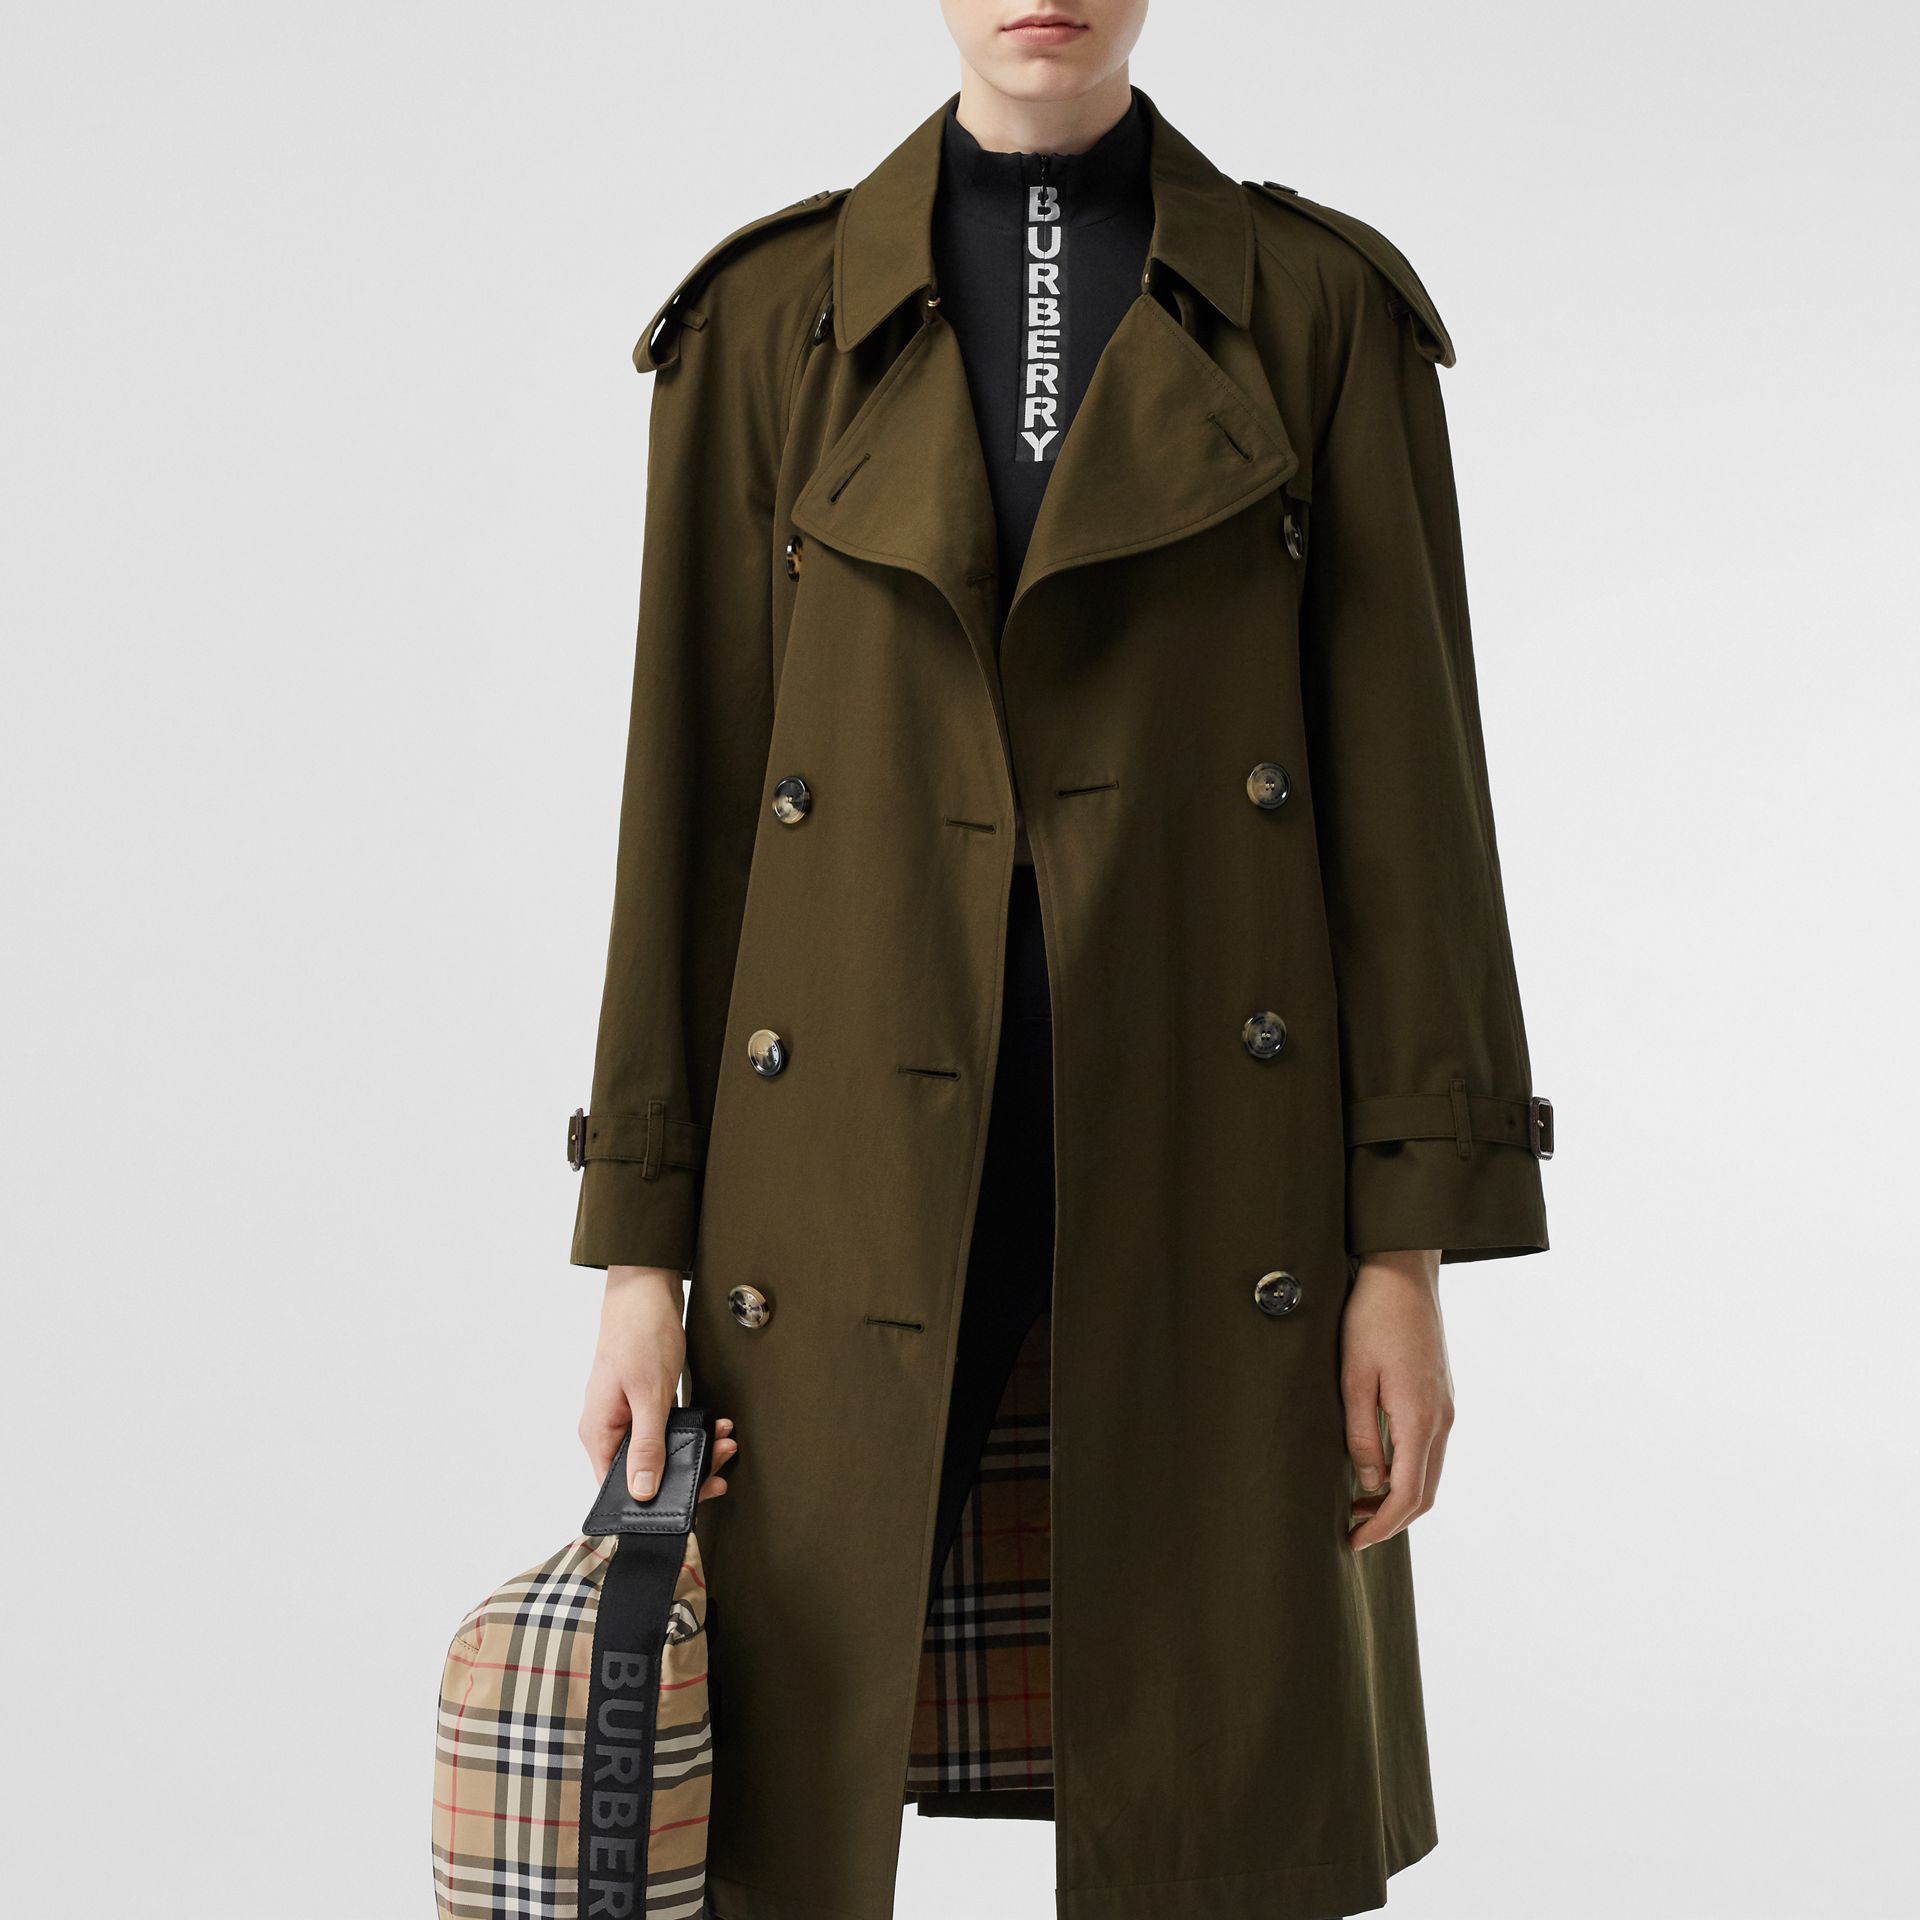 The Mid-length Westminster Heritage Trench Coat in Dark Military Khaki - Women | Burberry - gallery image 10